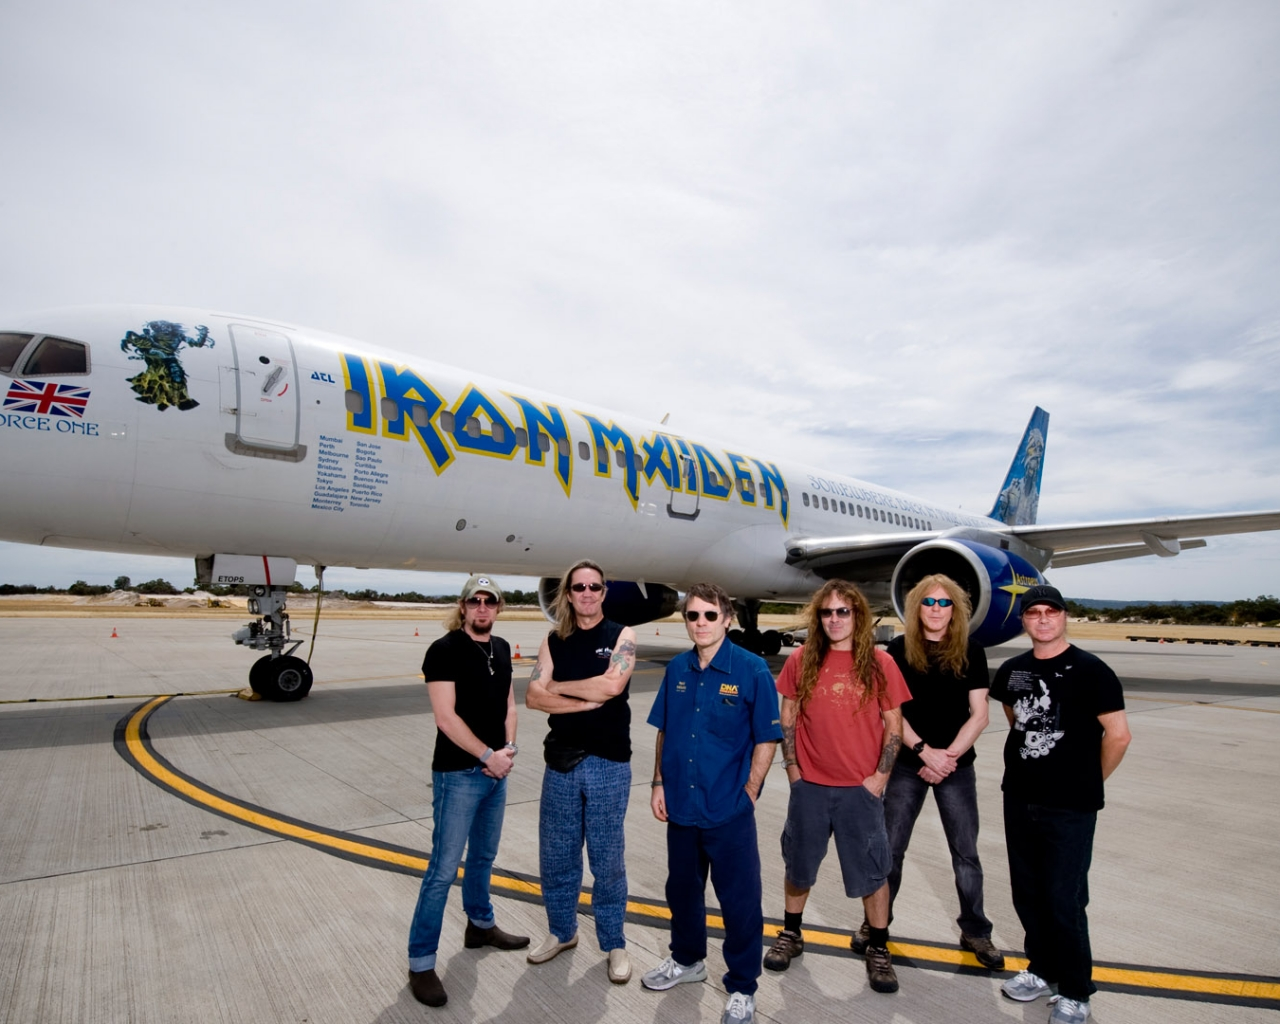 Iron Maiden y su avión privado - 1280x1024